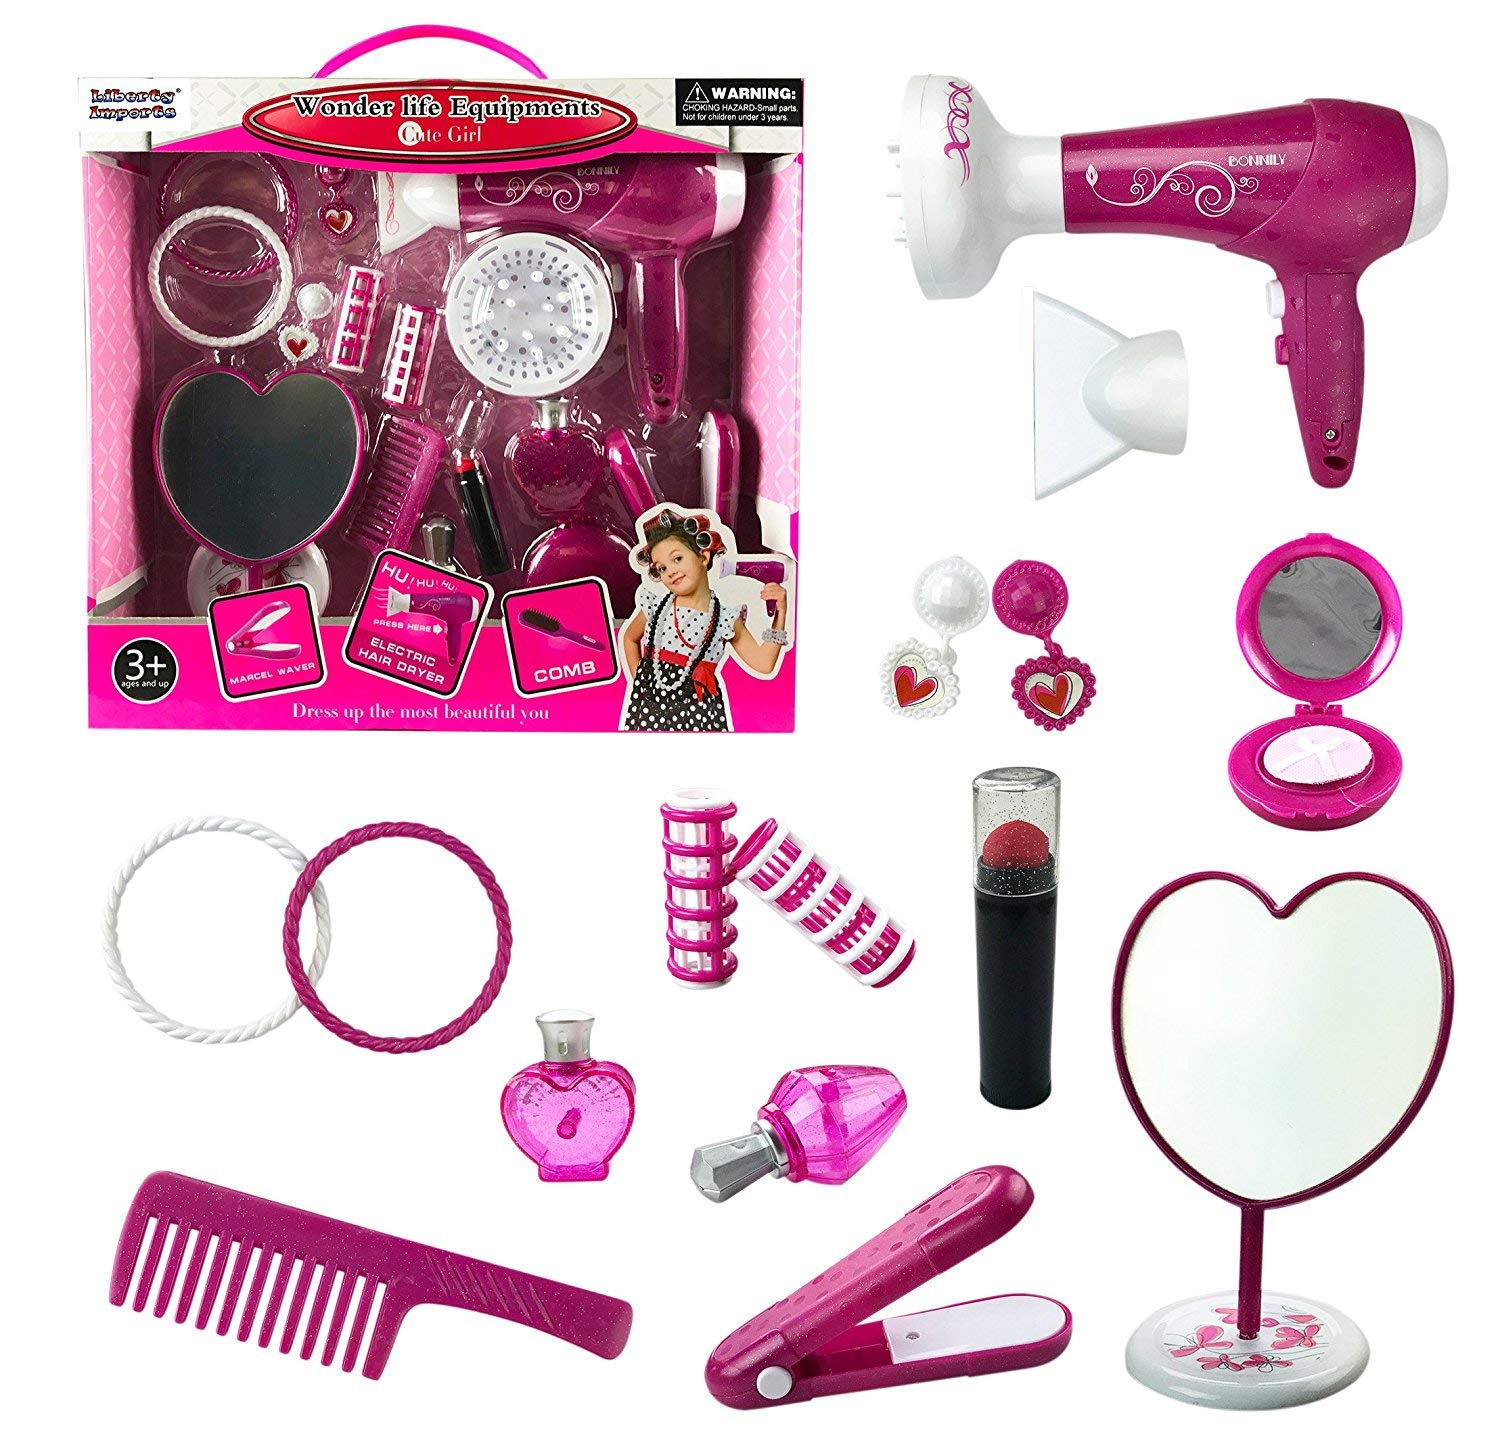 Liberty Imports Fashion Studio Cute Girls Beauty Salon Play Set with Hairdryer, Curling Iron, Mirror and Styling Accessories by Liberty Imports